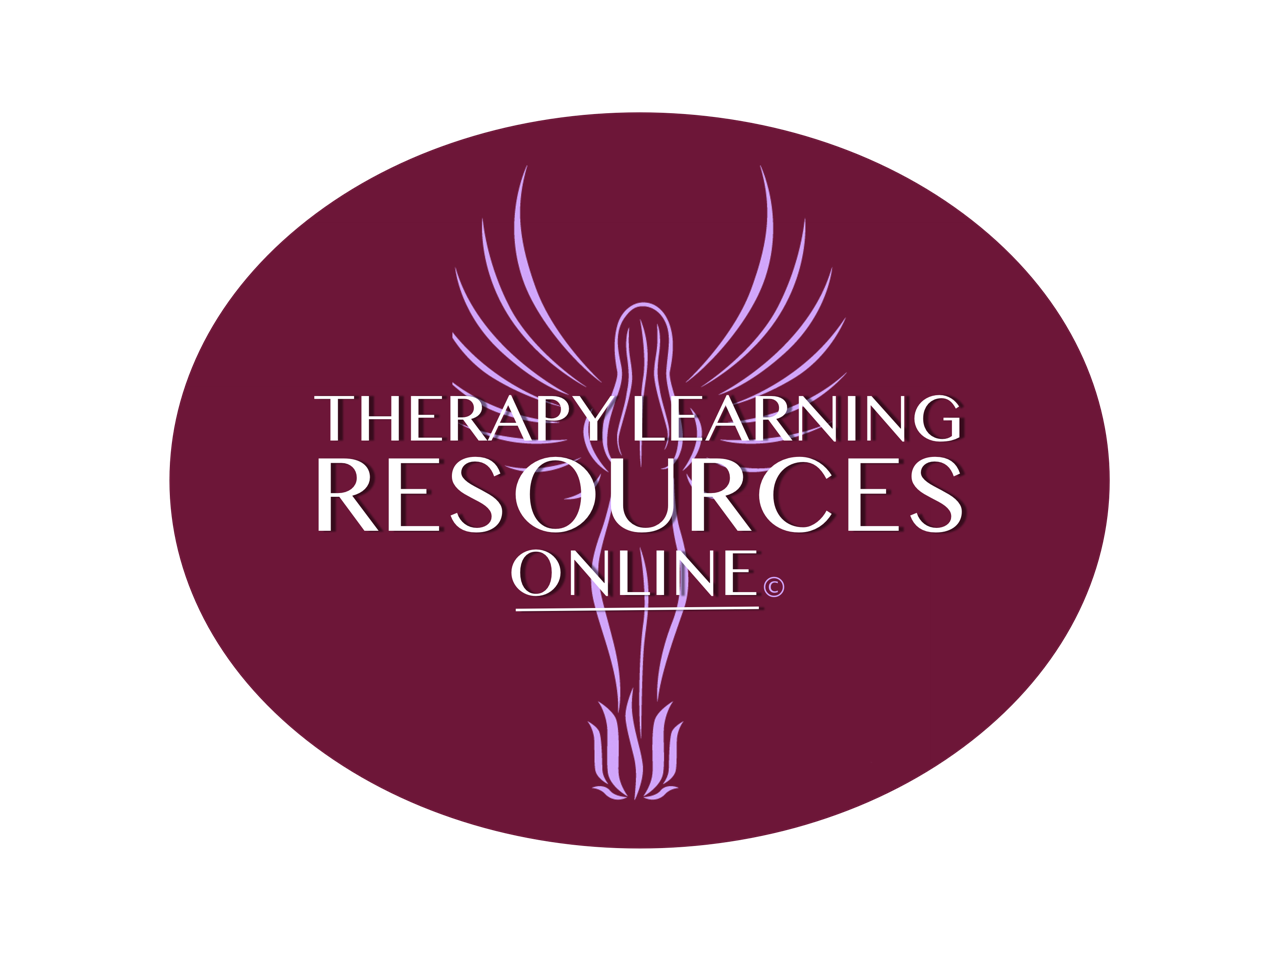 Therapy Learning Resources